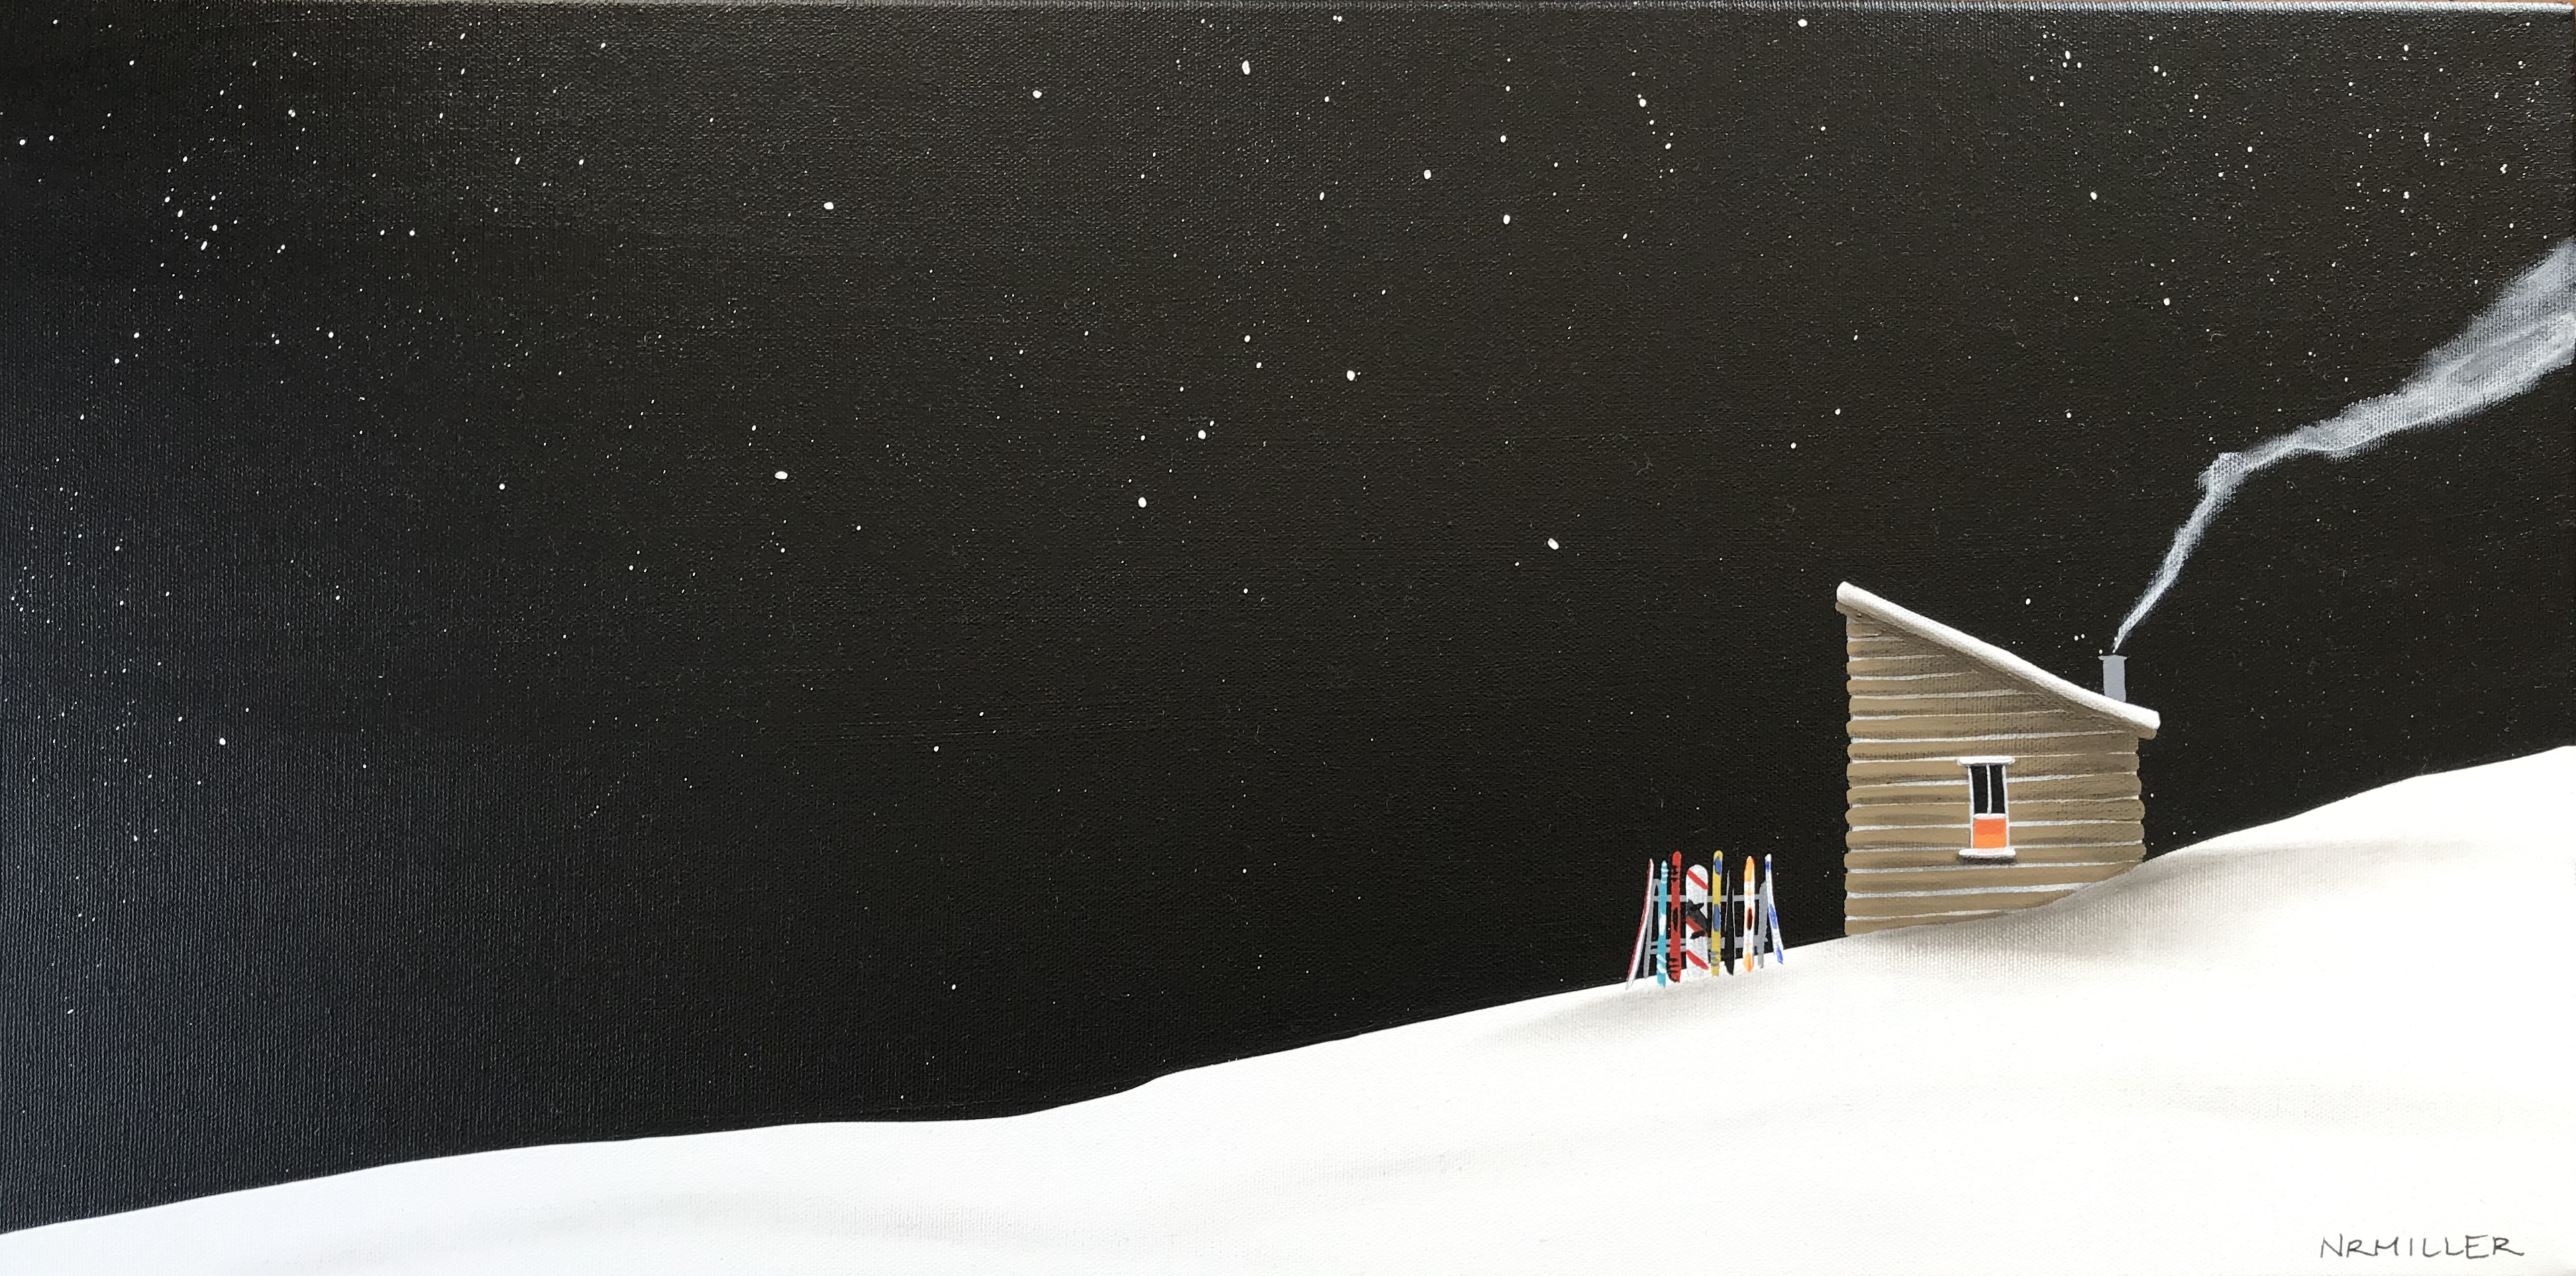 That's All She Wrote, mixed media ski chalet painting by Natasha Miller | Effusion Art Gallery + Cast Glass Studio, Invermere BC